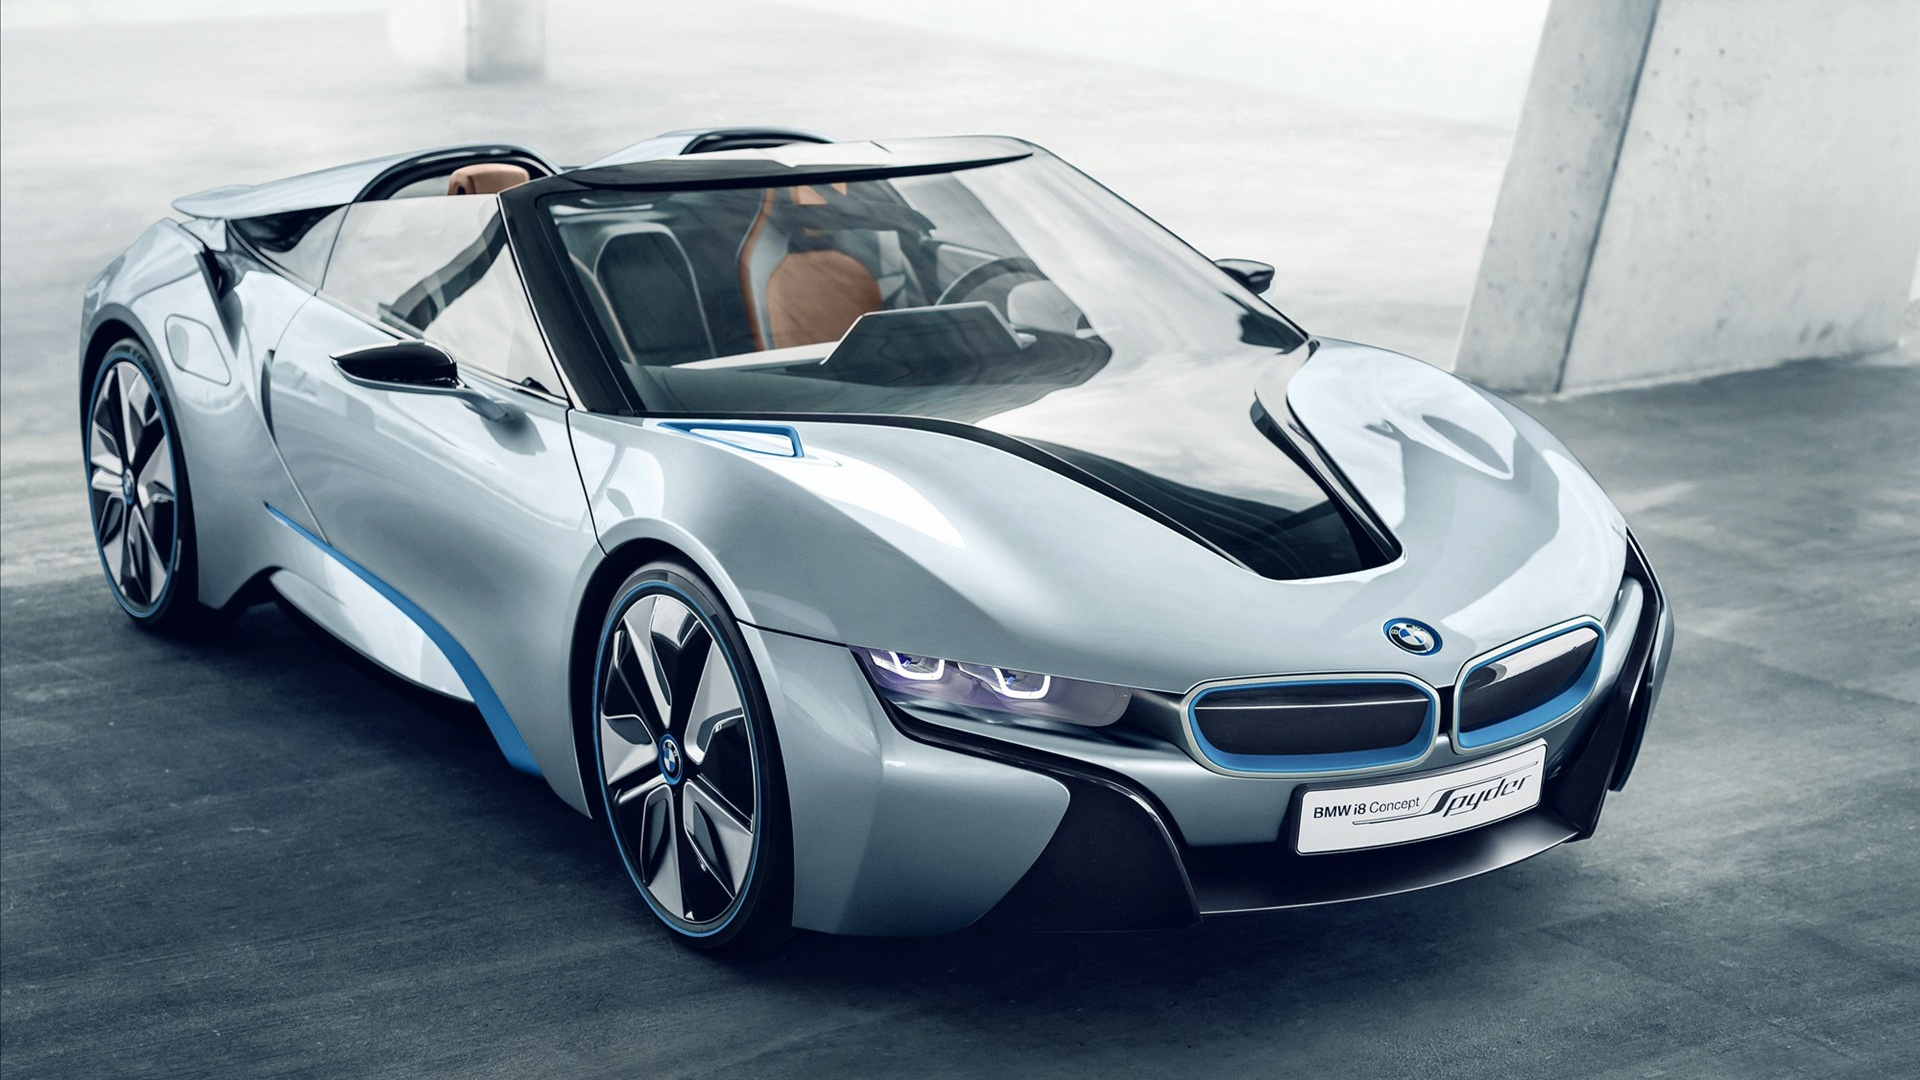 BMW i8 Spyder Concept Car Wallpapers HD Wallpapers 1920x1080